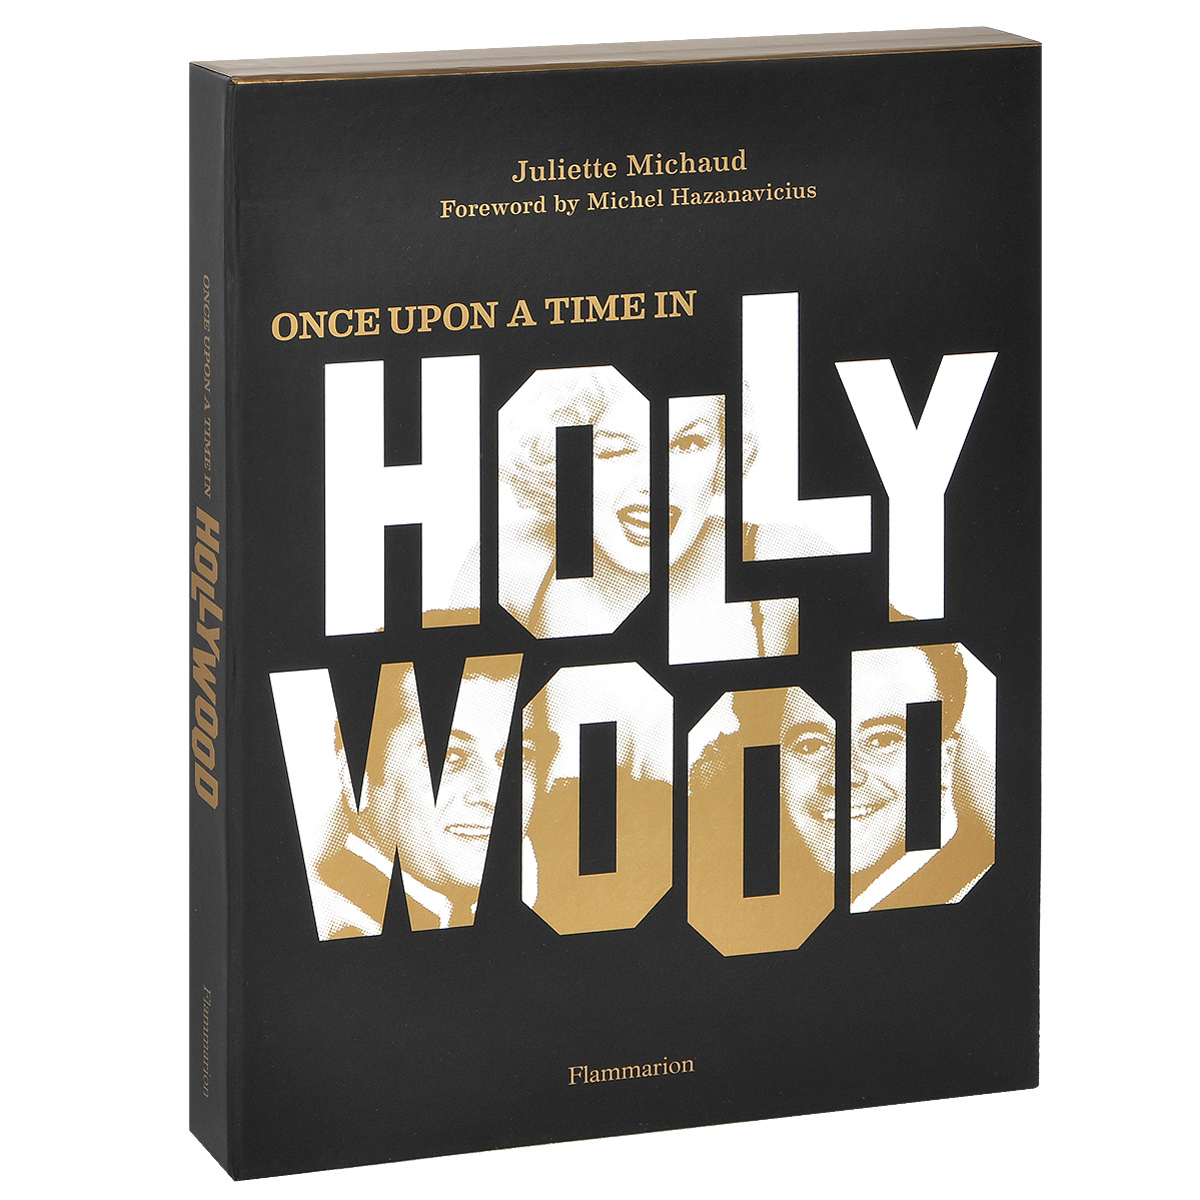 Once Upon a Time in Hollywood hollywood cinema film movie black filming background vinyl cloth high quality computer printed wall backdrop